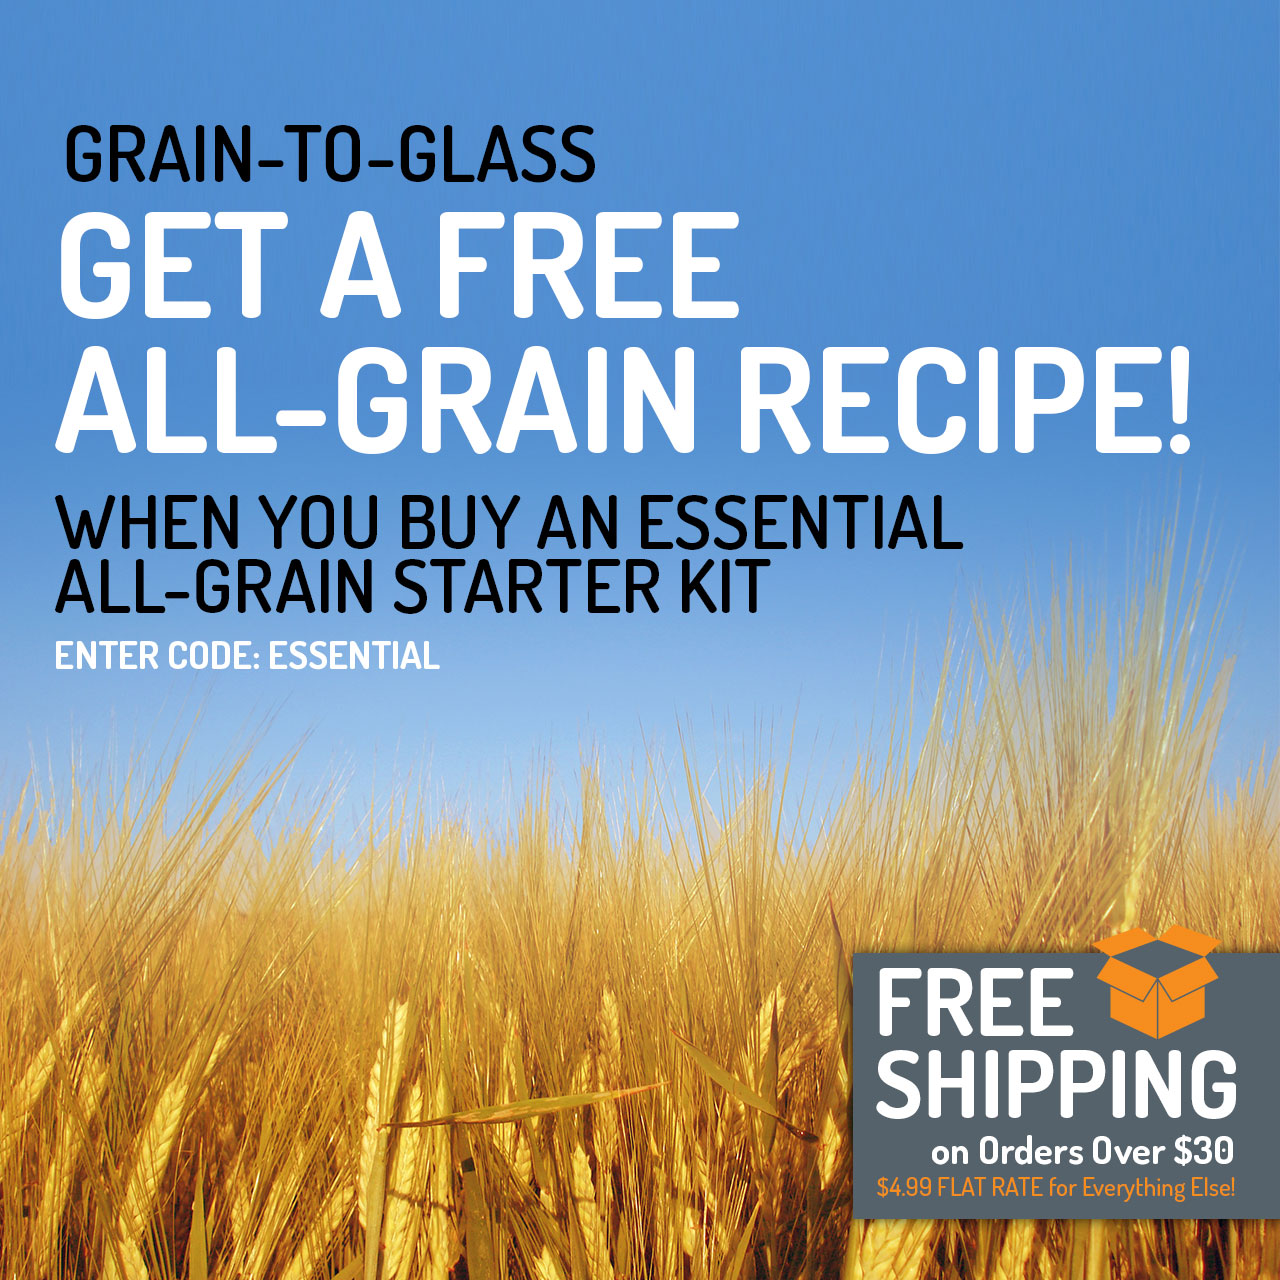 Free All-Grain Recipe Kit w/ Purchase of All Grain Starter Kit, through 10/22/2018, at 11:59 pm (CST)